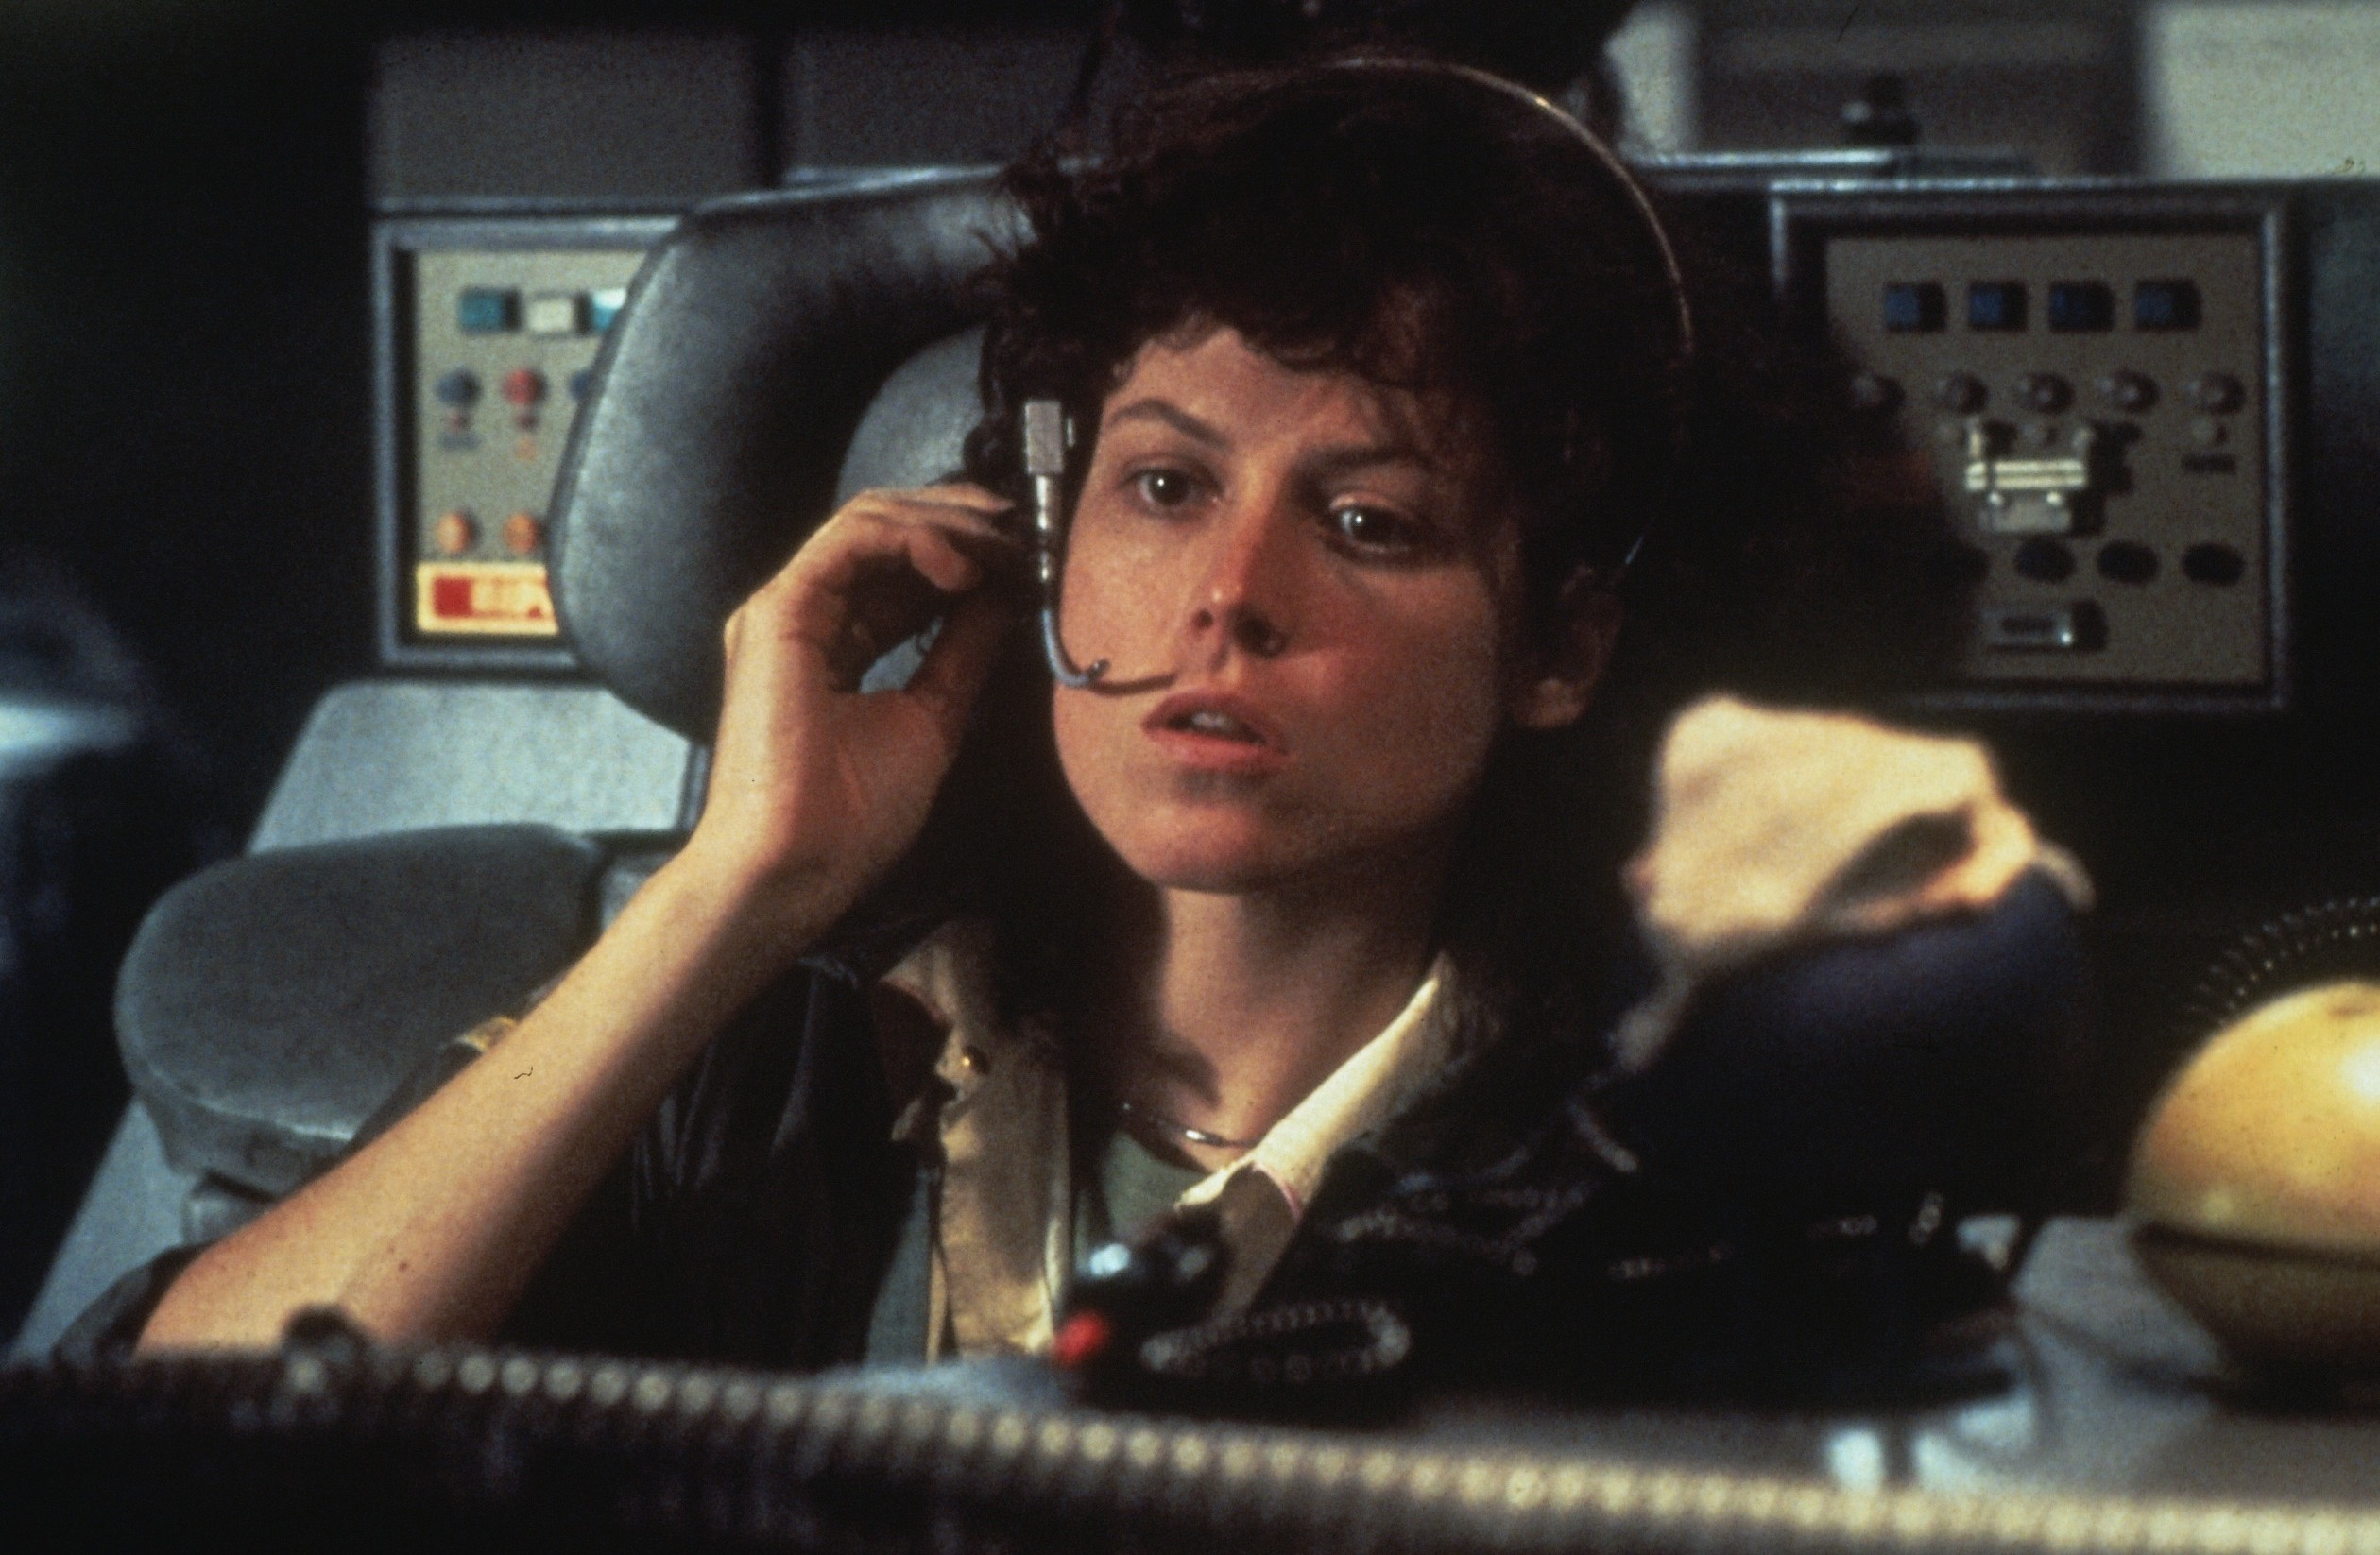 Sigourney Weaver as Ellen Ripley in Alien